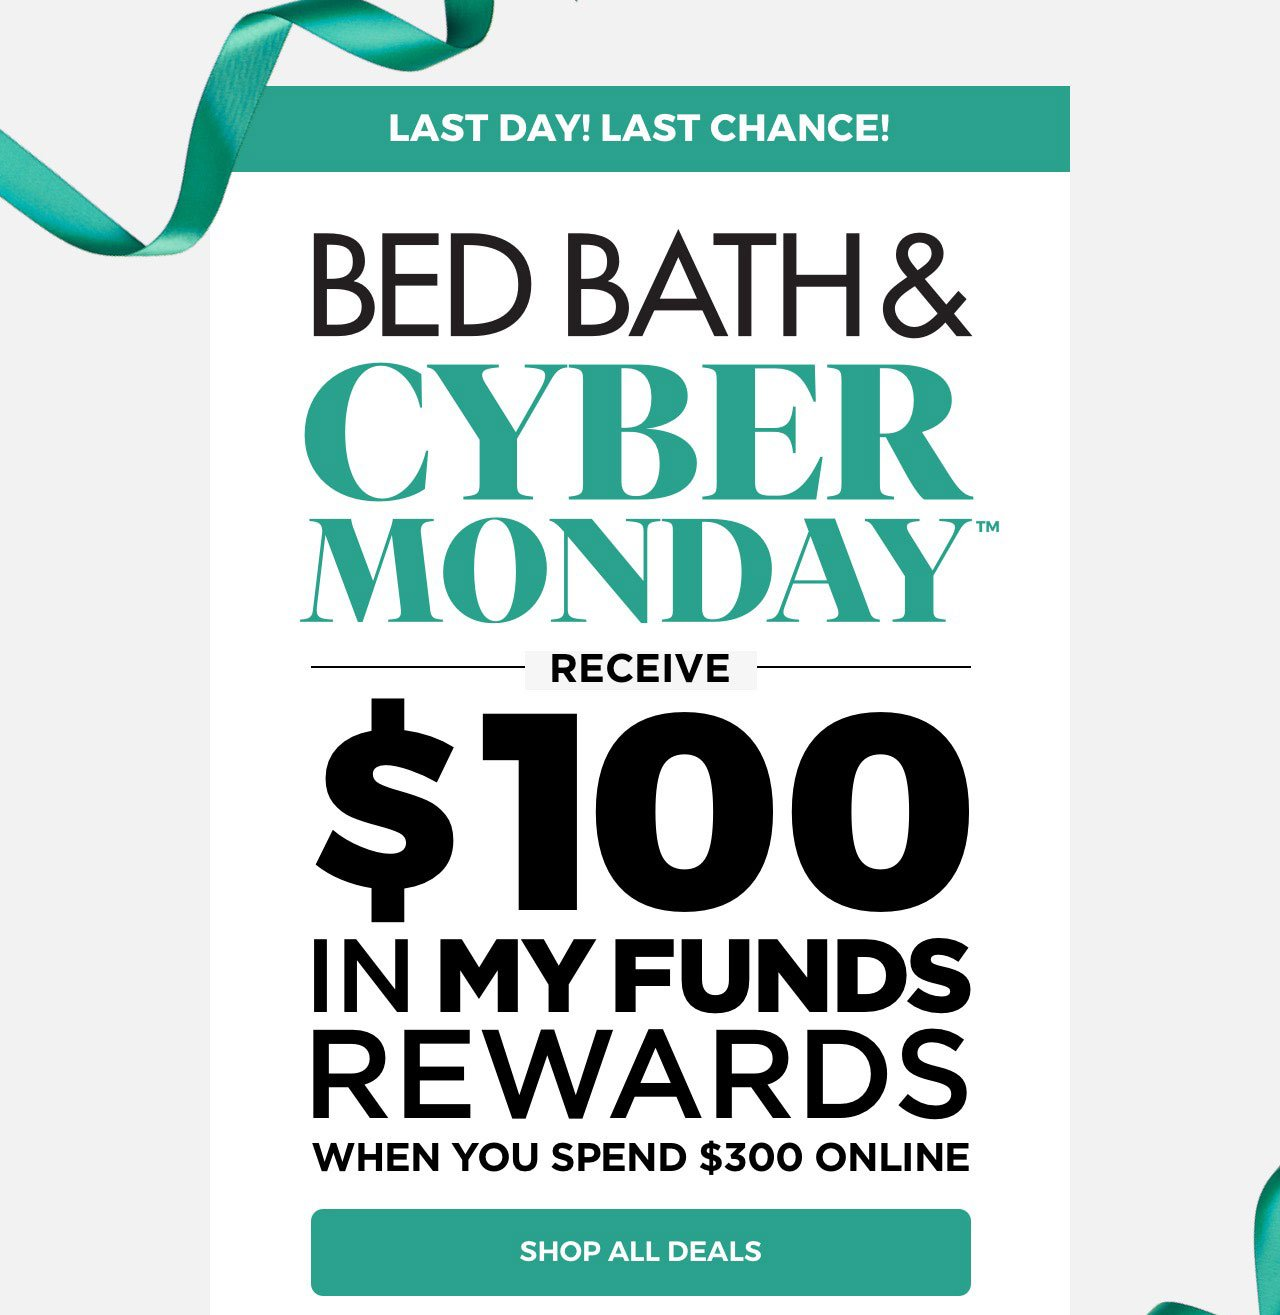 Last Day! Last Chance! Bed Bath & Cyber Monday™ - Receive $100 in My Funds Rewards When You Spend $300 Online - Shop All Deals